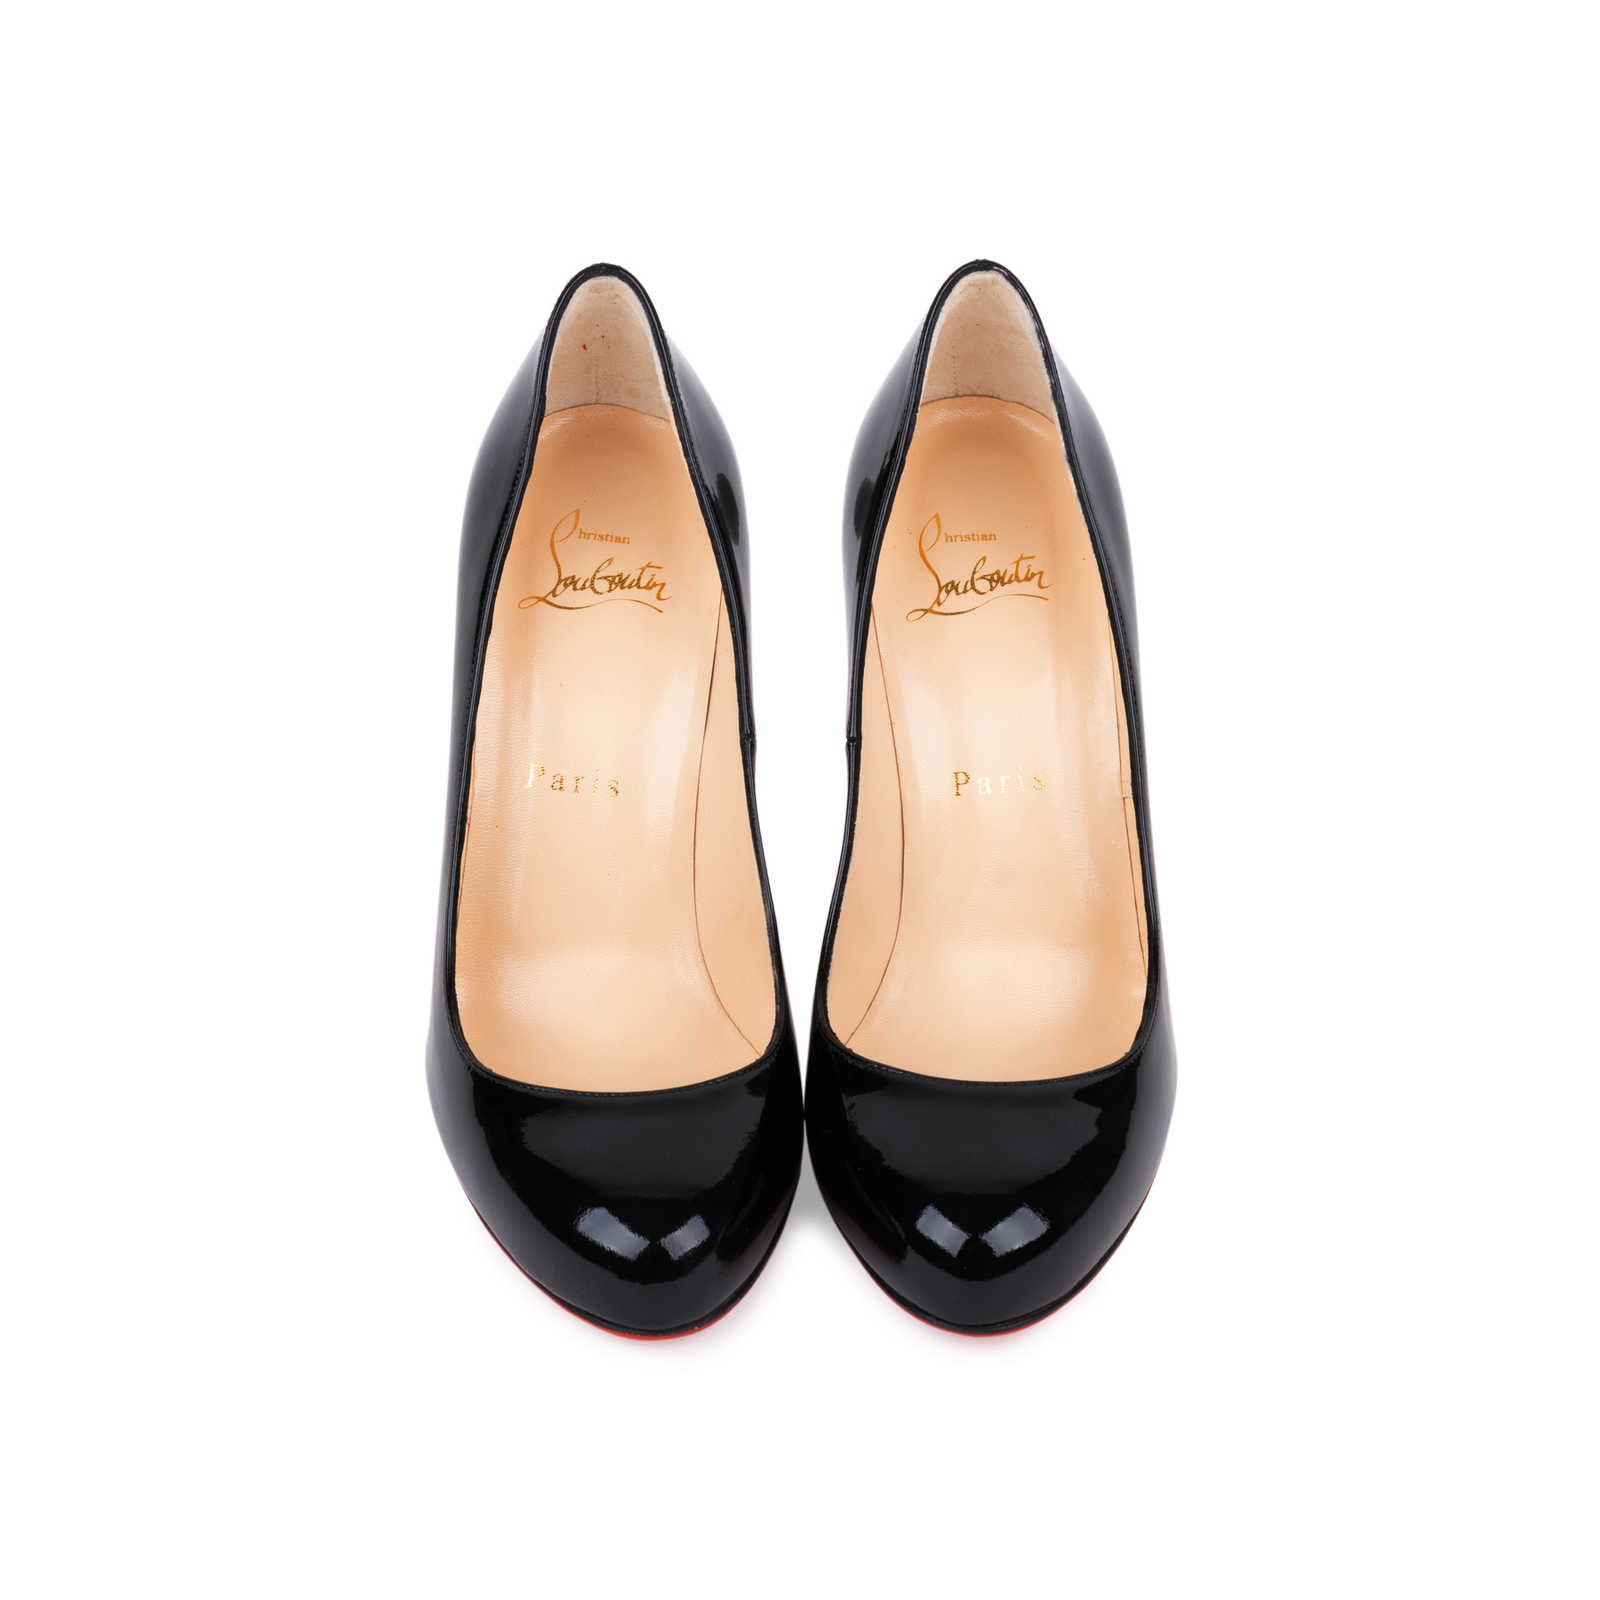 timeless design b17e5 5bdc6 Authentic Second Hand Christian Louboutin Fifi Patent Pumps ...